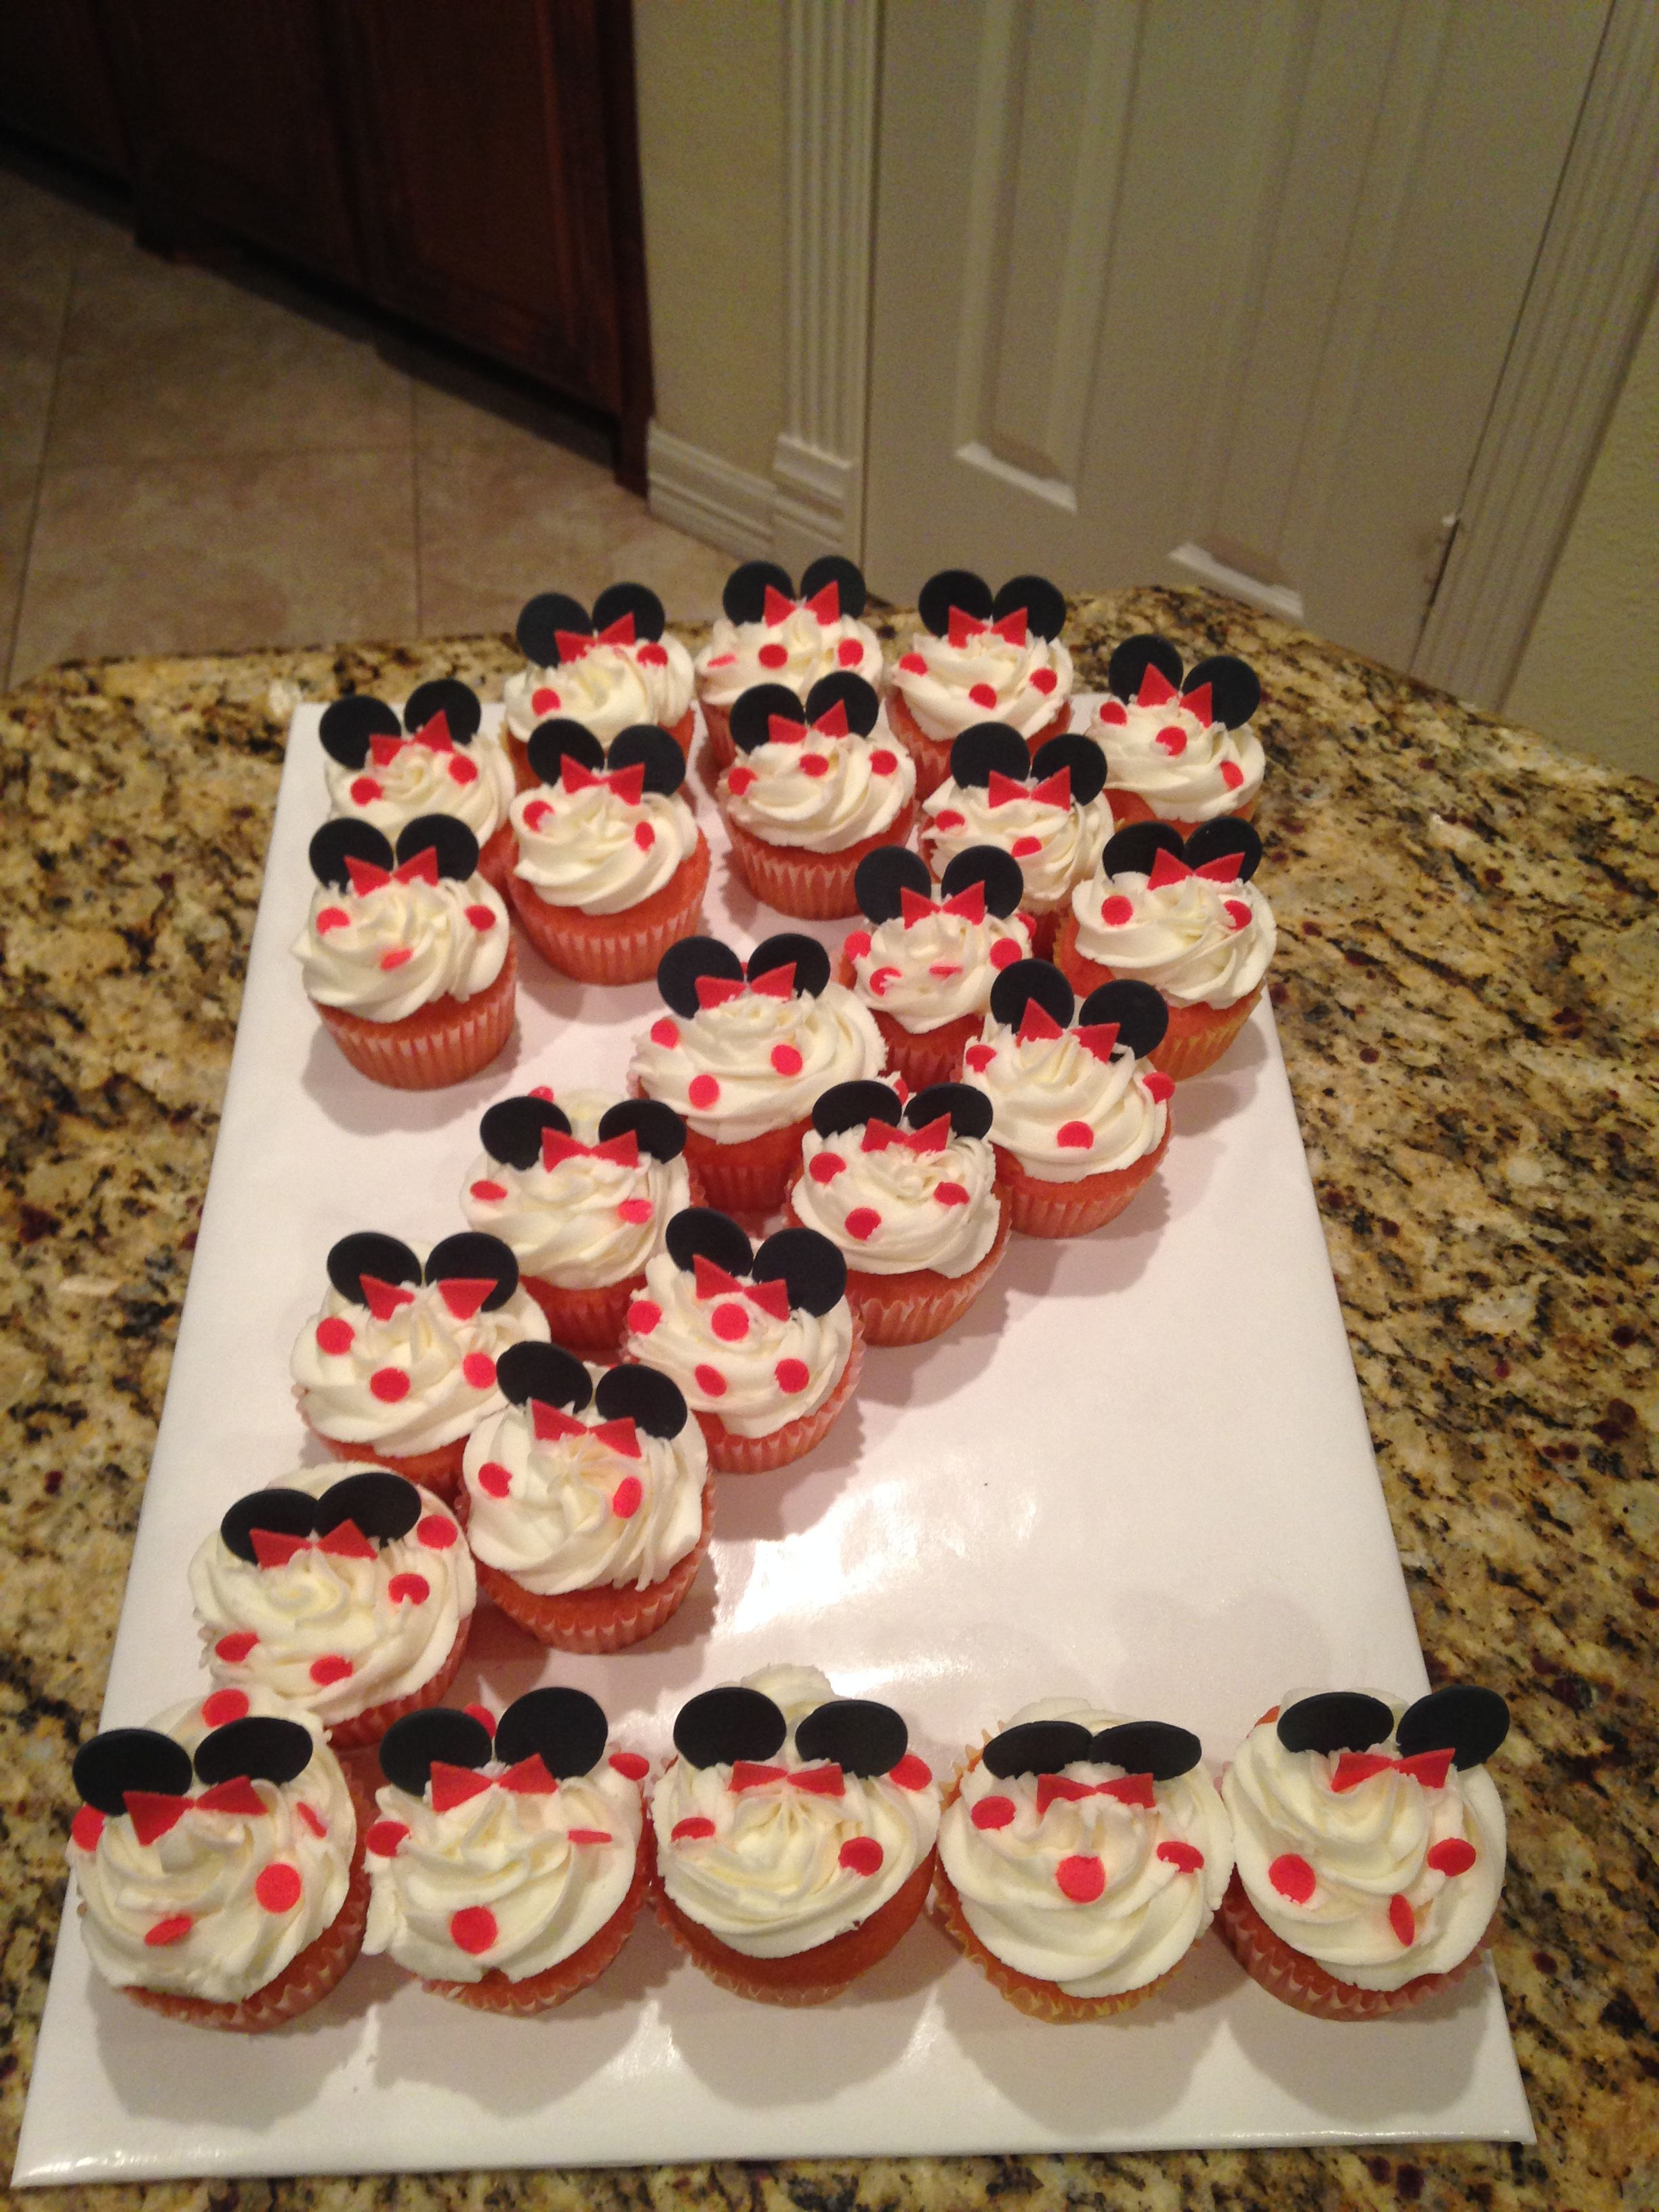 Formation Decoration De Gateau Pin By Eva Mendoza On My Cakes In 2019 Mickey Mouse Cupcakes